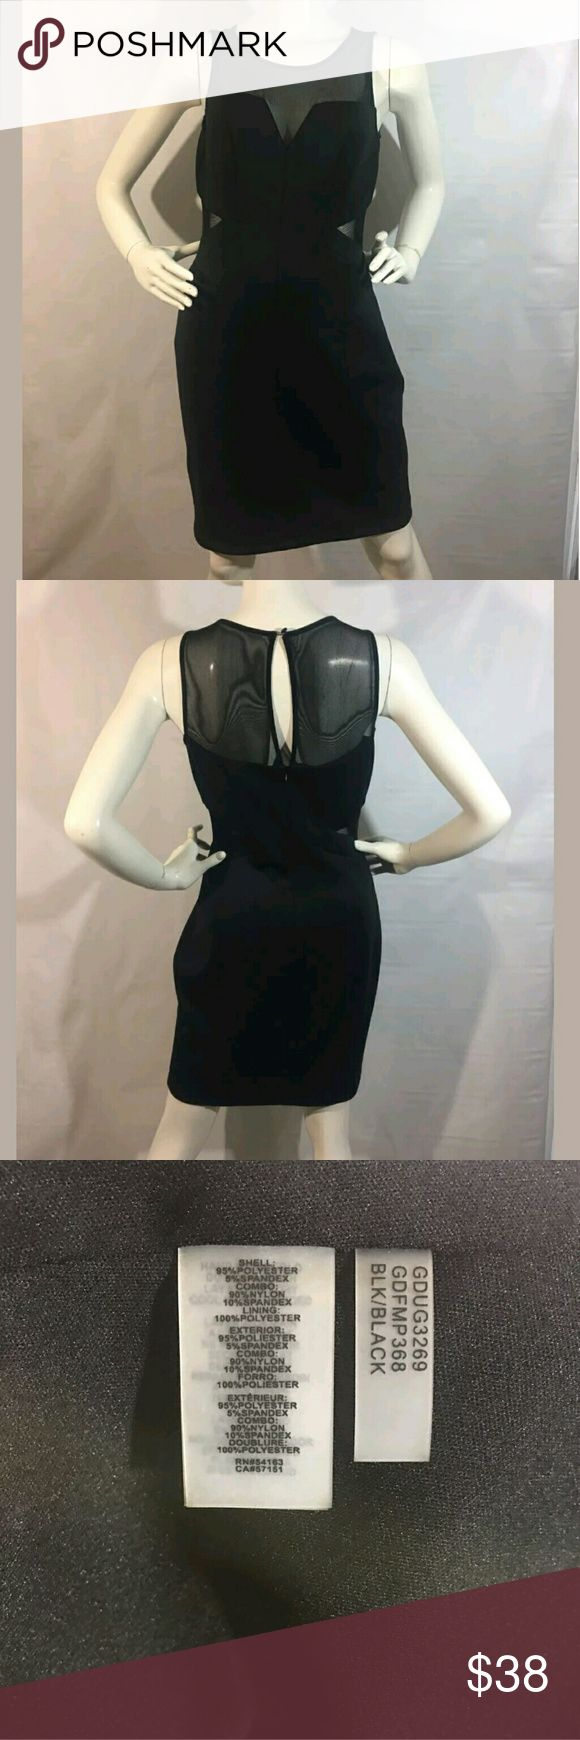 Guess Dress Size 10 Sweetheart Mesh Neckline Guess Dress Women's Size 10 Sweetheart Mesh Neckline Inset Bodycon Scuba Black   Excellent used condition.  95% Polyester 5% Spandex  Lining 100% Polyester.   16 inches pit to pit.  29 inch waist.  32 inch hips.  35 inches long.   LB Guess Dresses